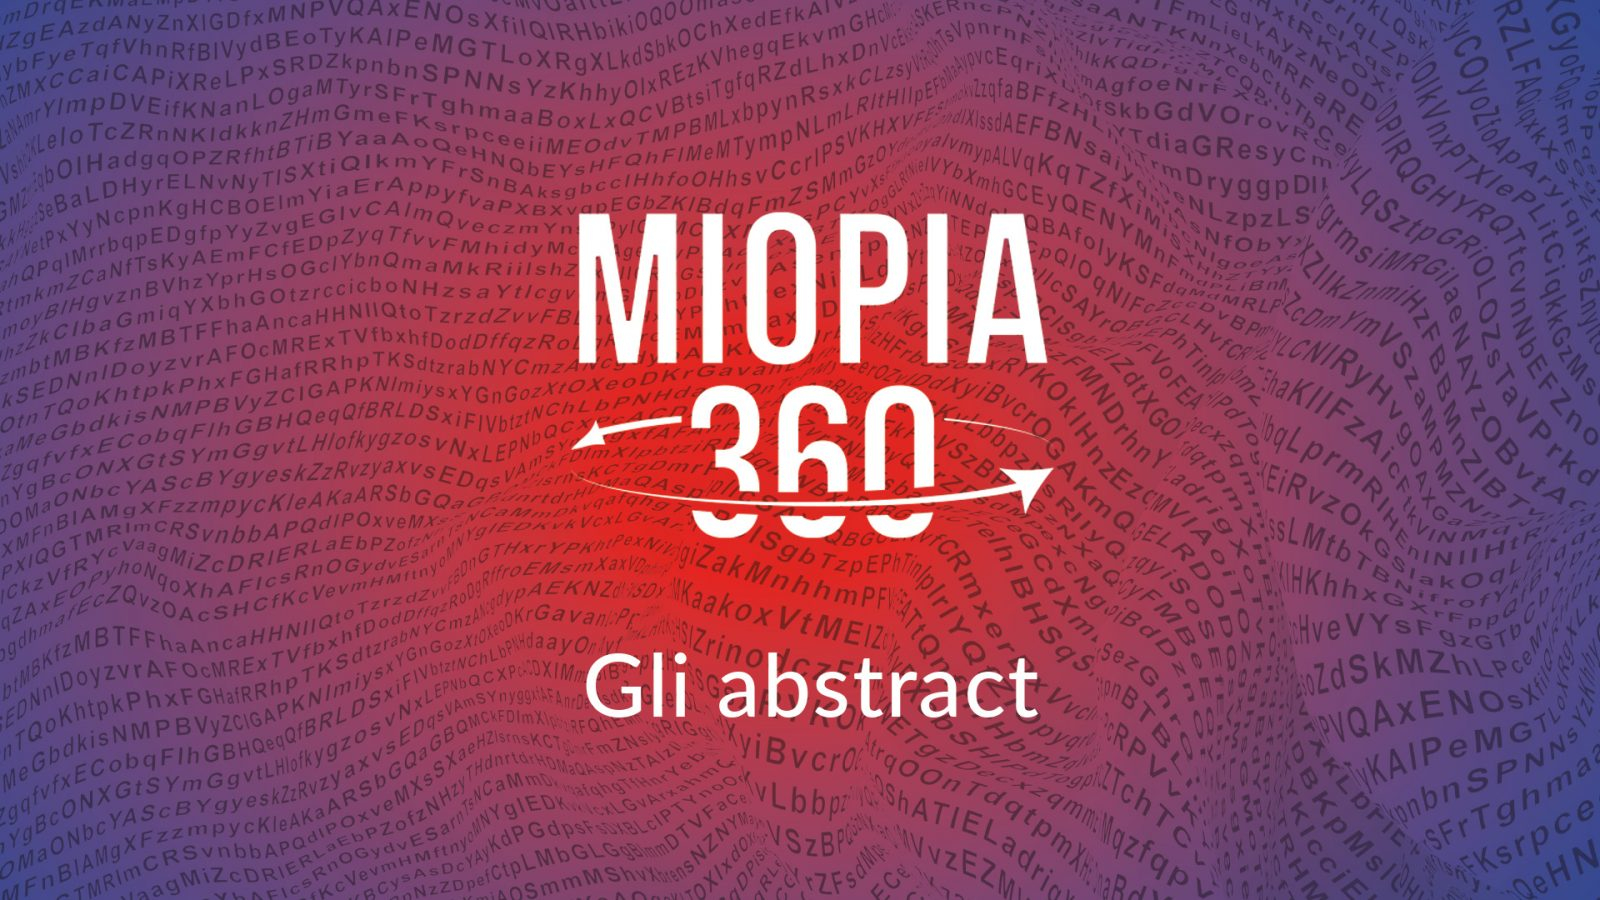 promo-miopia-360-abstract